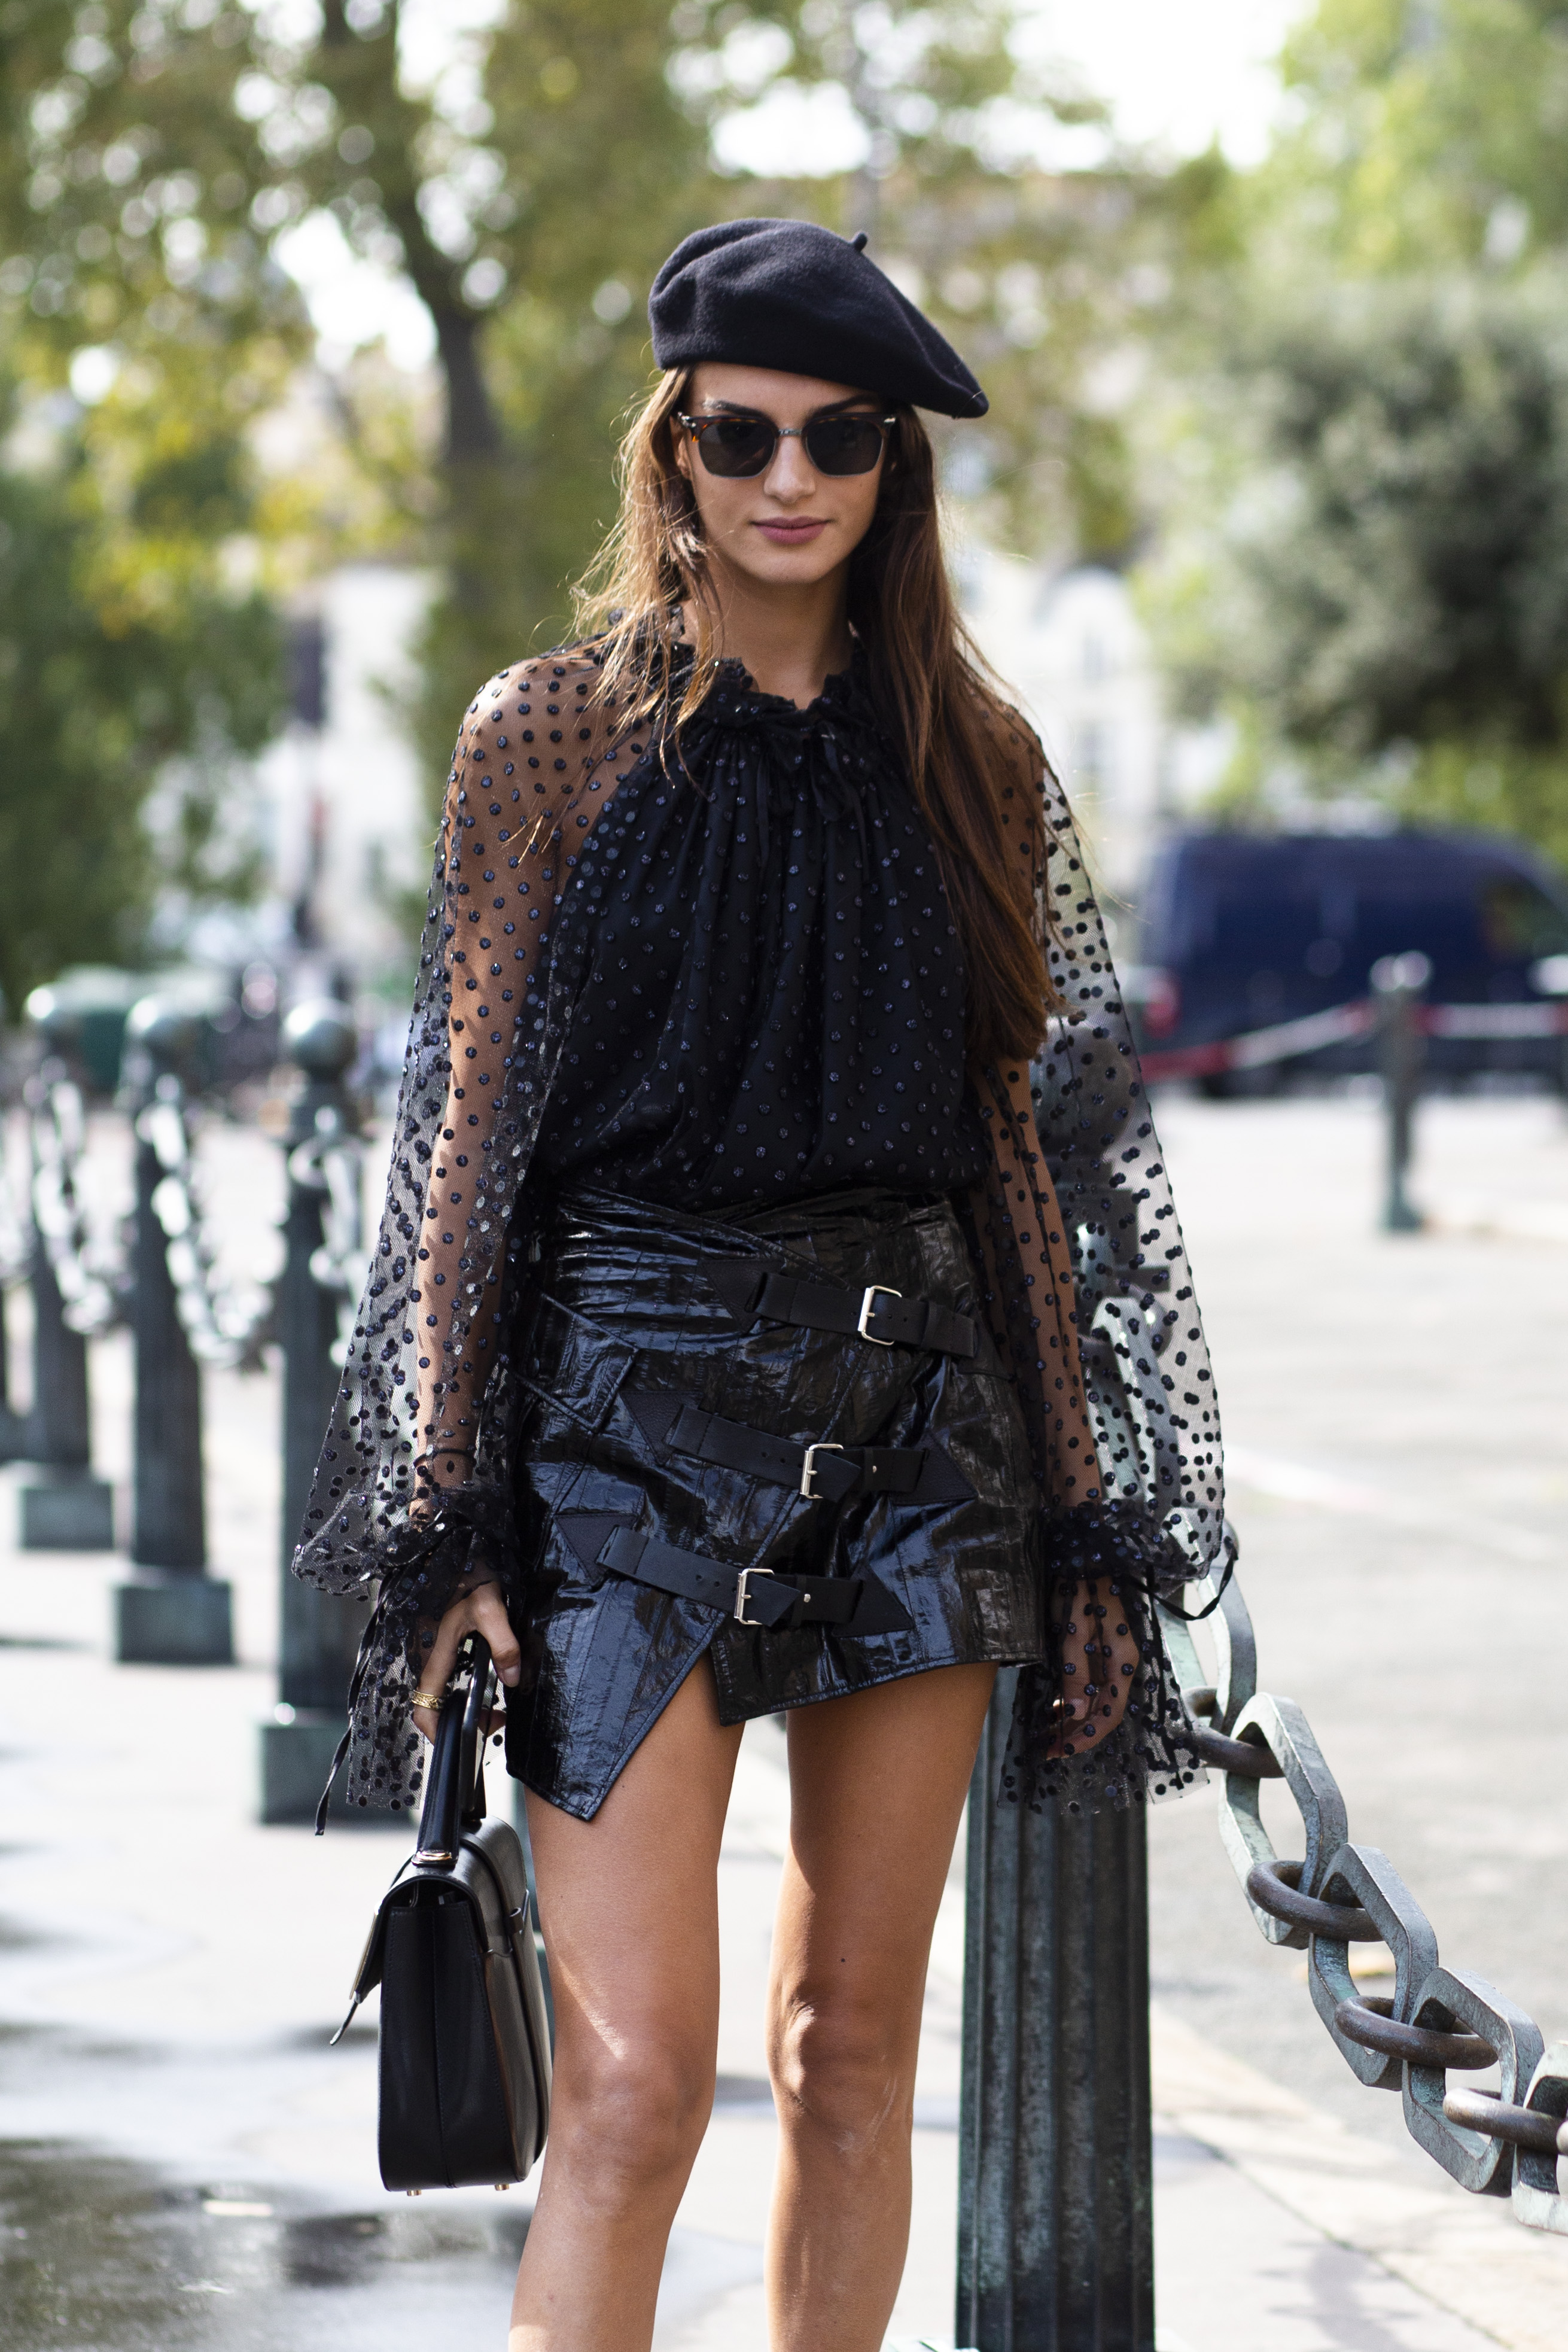 streetfashion_paris_wss20_218.jpg